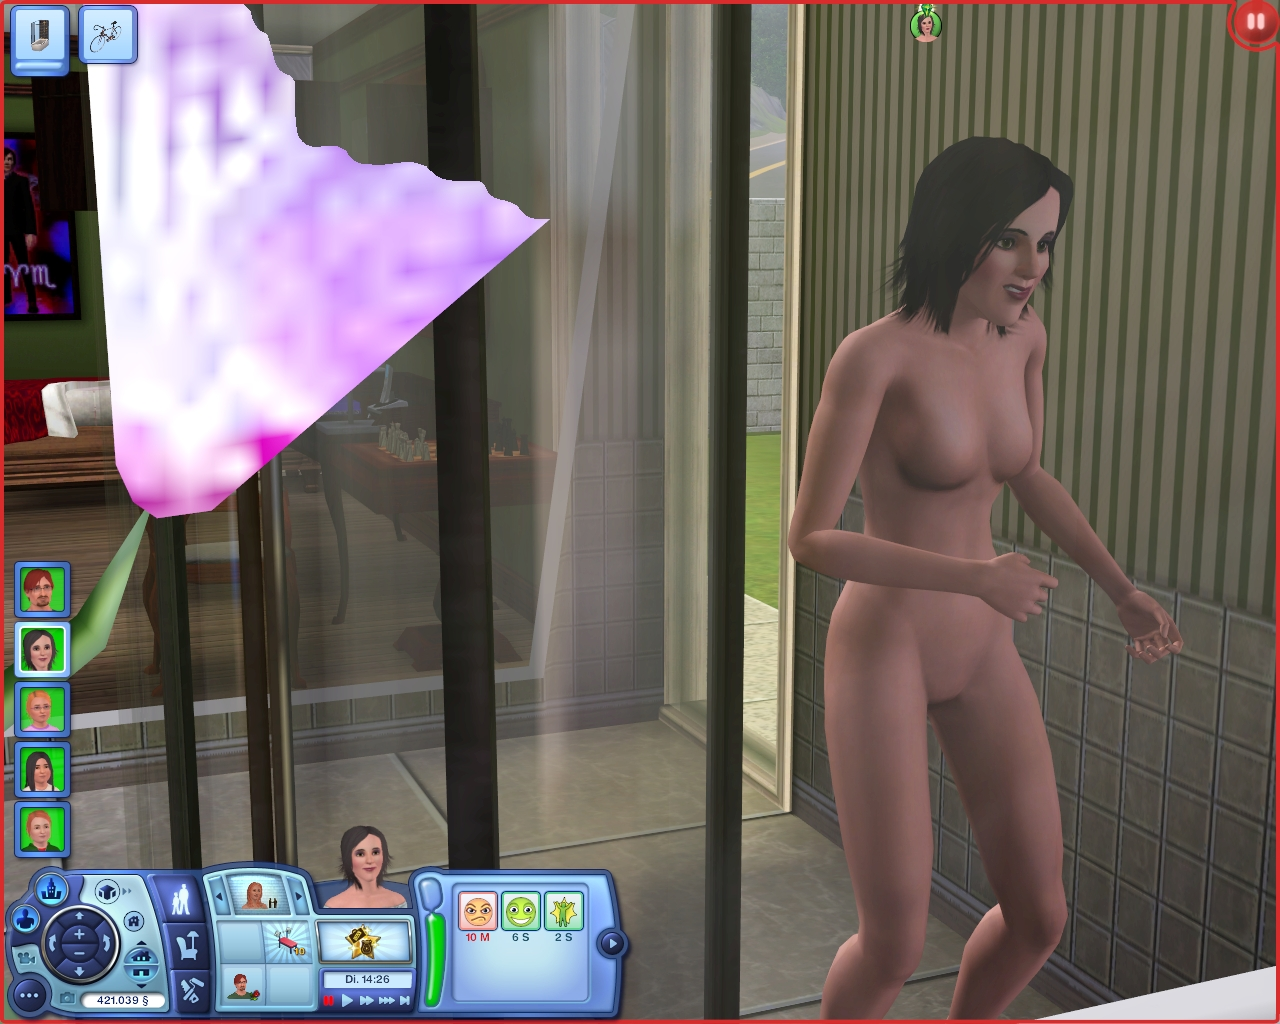 The sims 2 censor nude patch sexual models